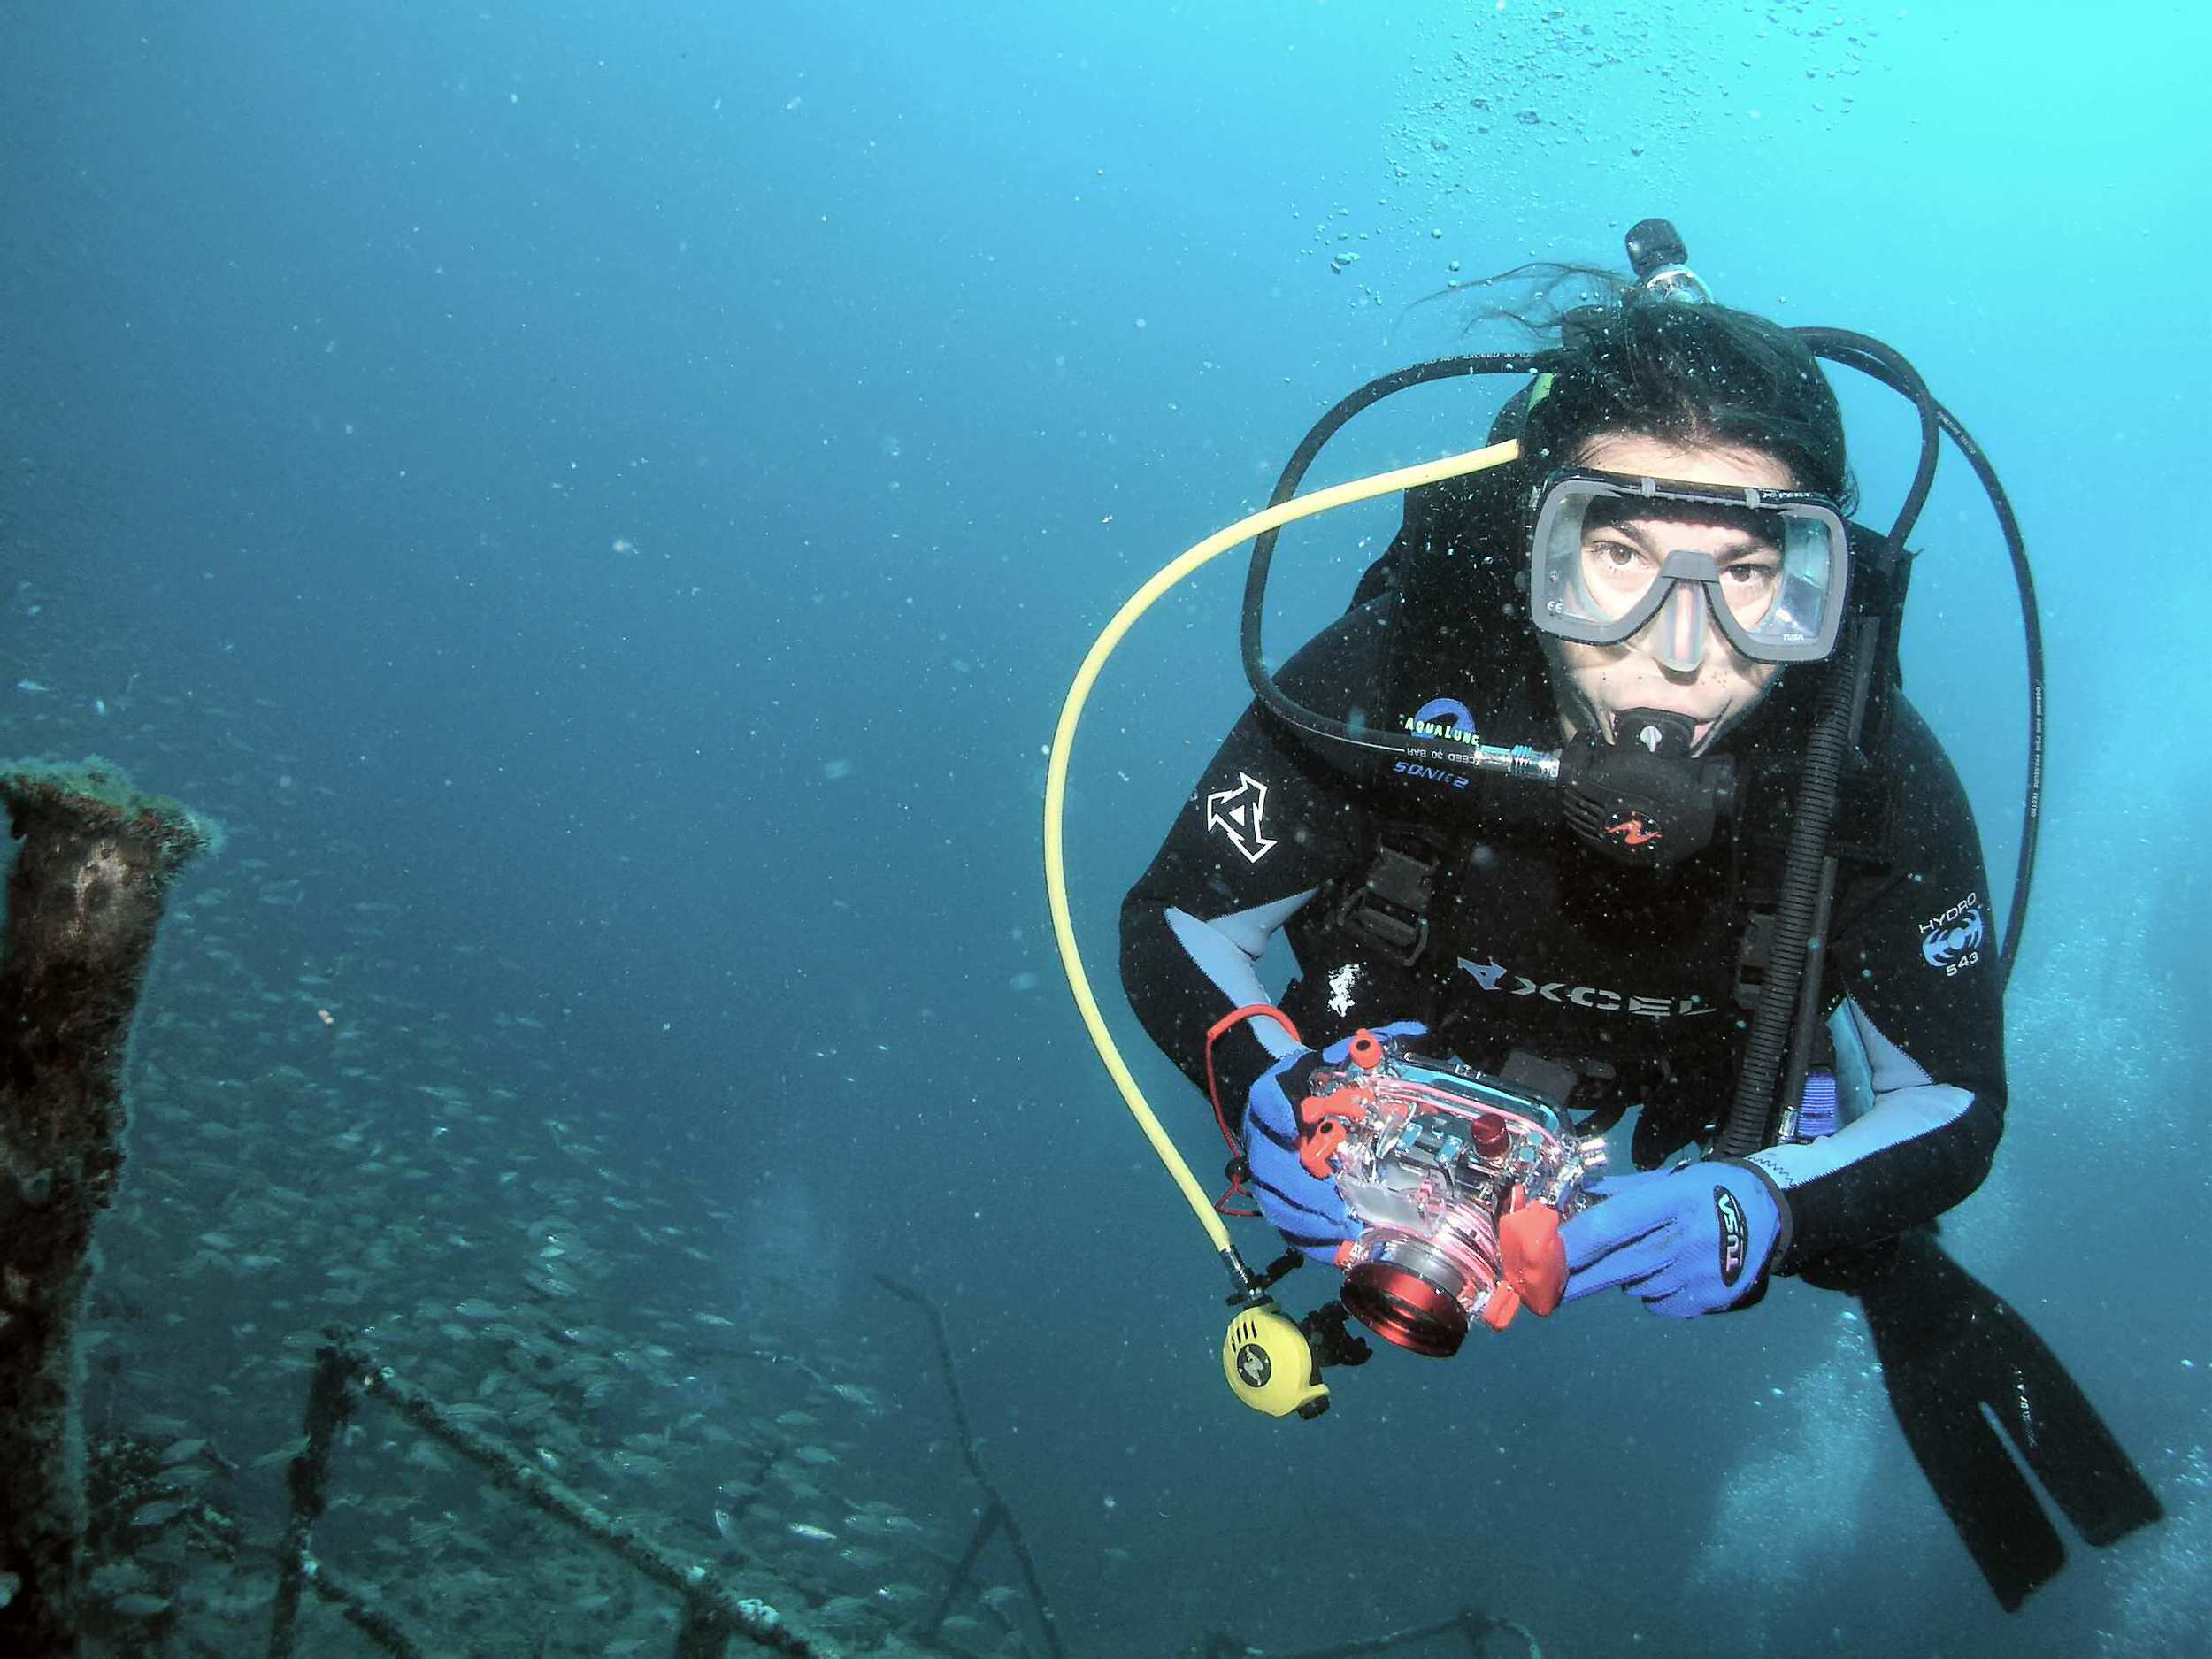 Besides grilling and blending spices, my other passion is to scuba dive. Here I am diving a WWII wreck off Morehead City, NC. German submarines, sand tiger sharks, and lion fish---always plenty to see.